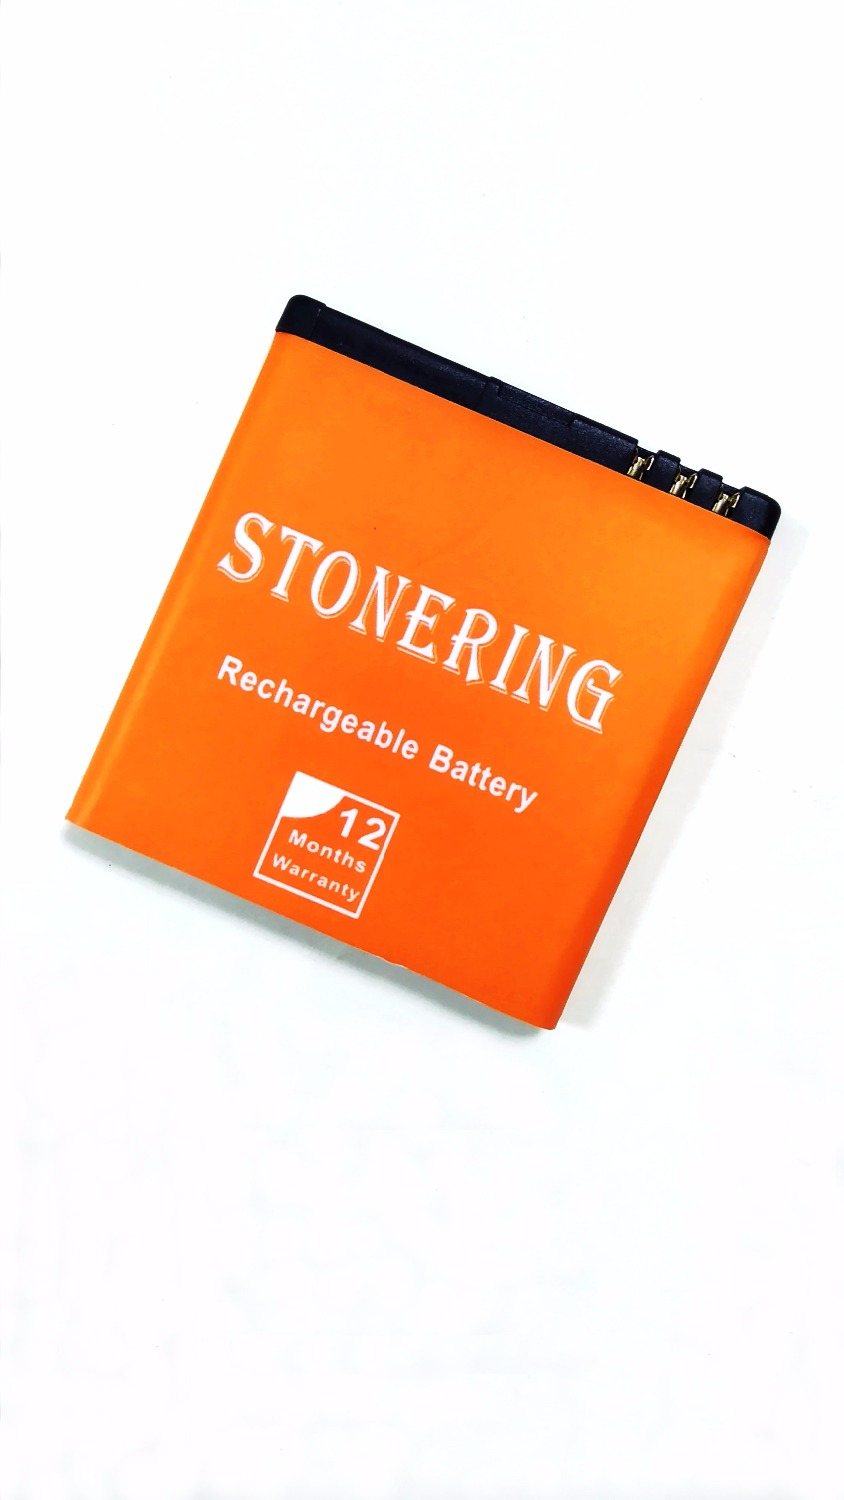 Stonering Replacement Battery Cellphone Explay 1400mah For Q230/Q231/Q232/..